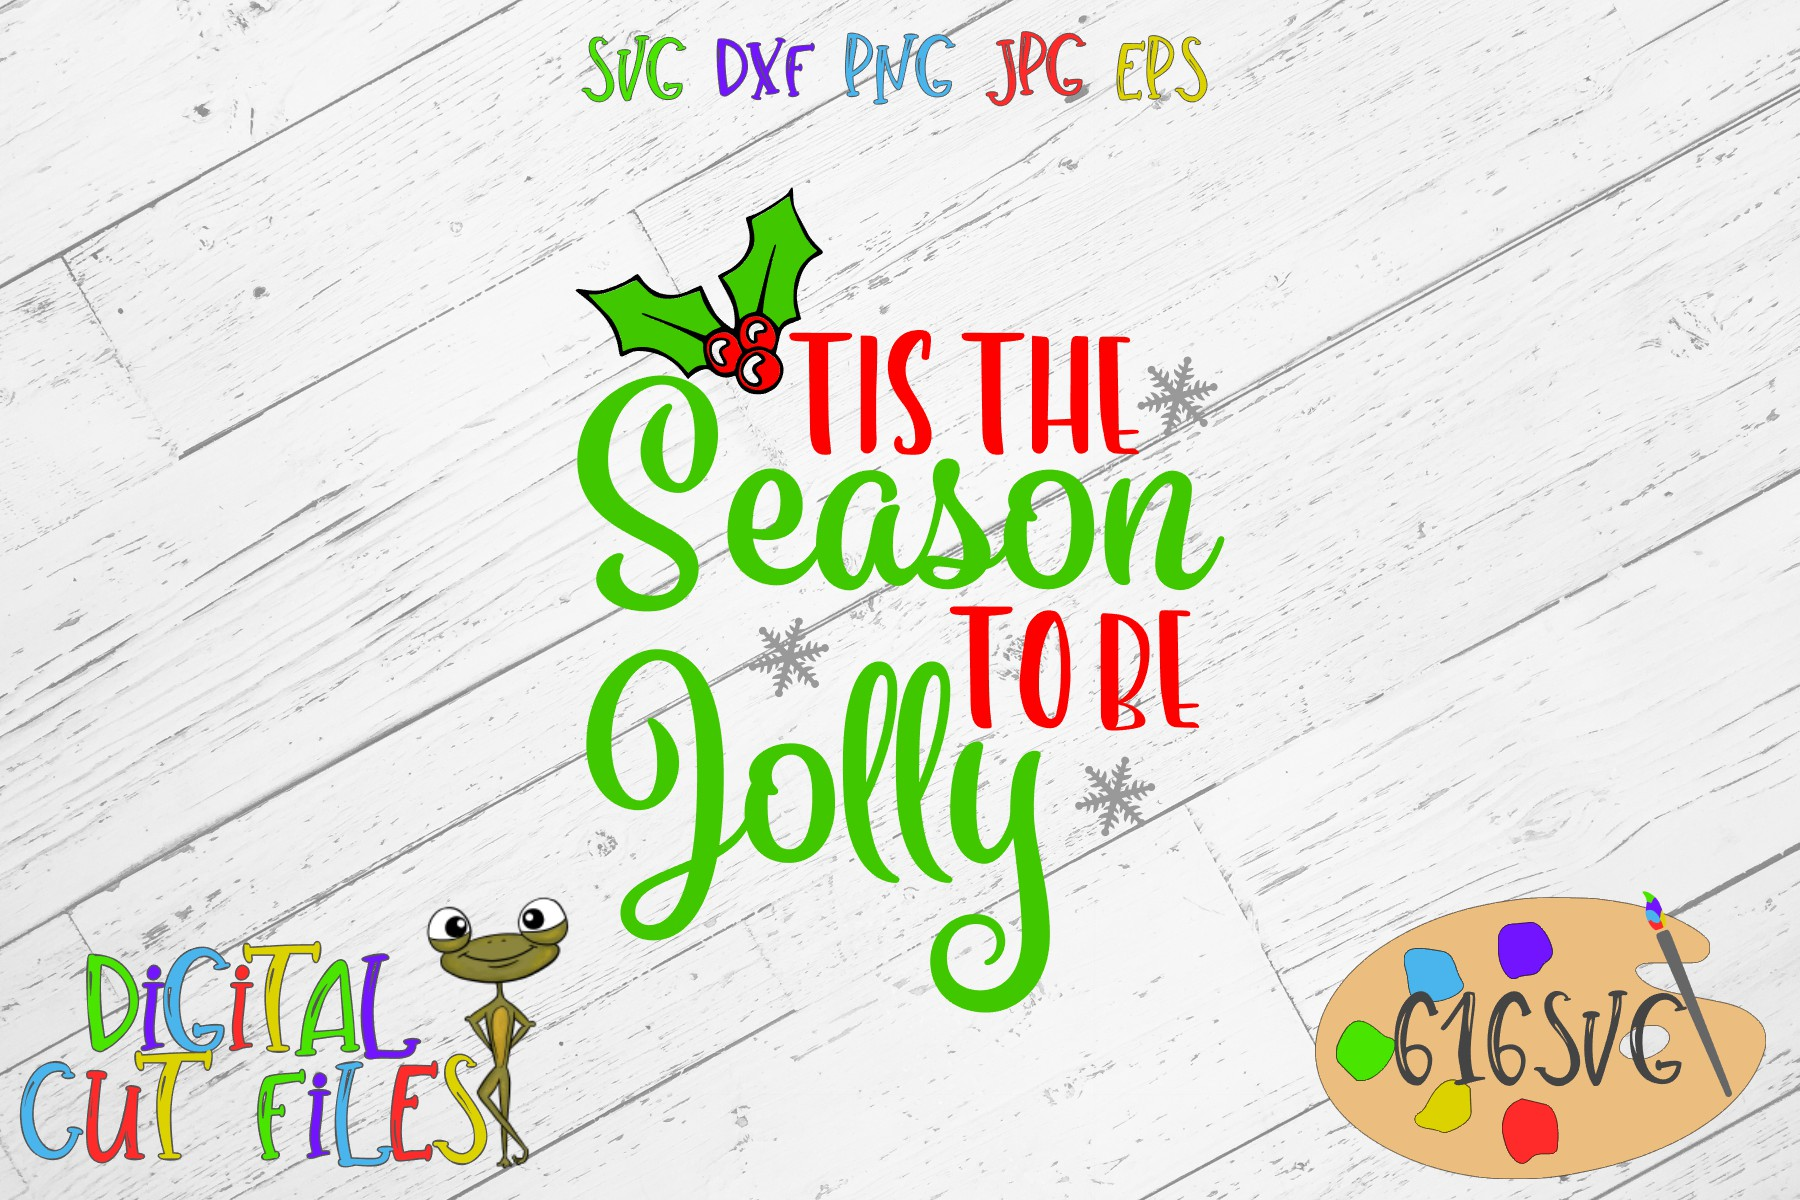 Tis The Season To Be Jolly Svg Graphic By 616svg Creative Fabrica